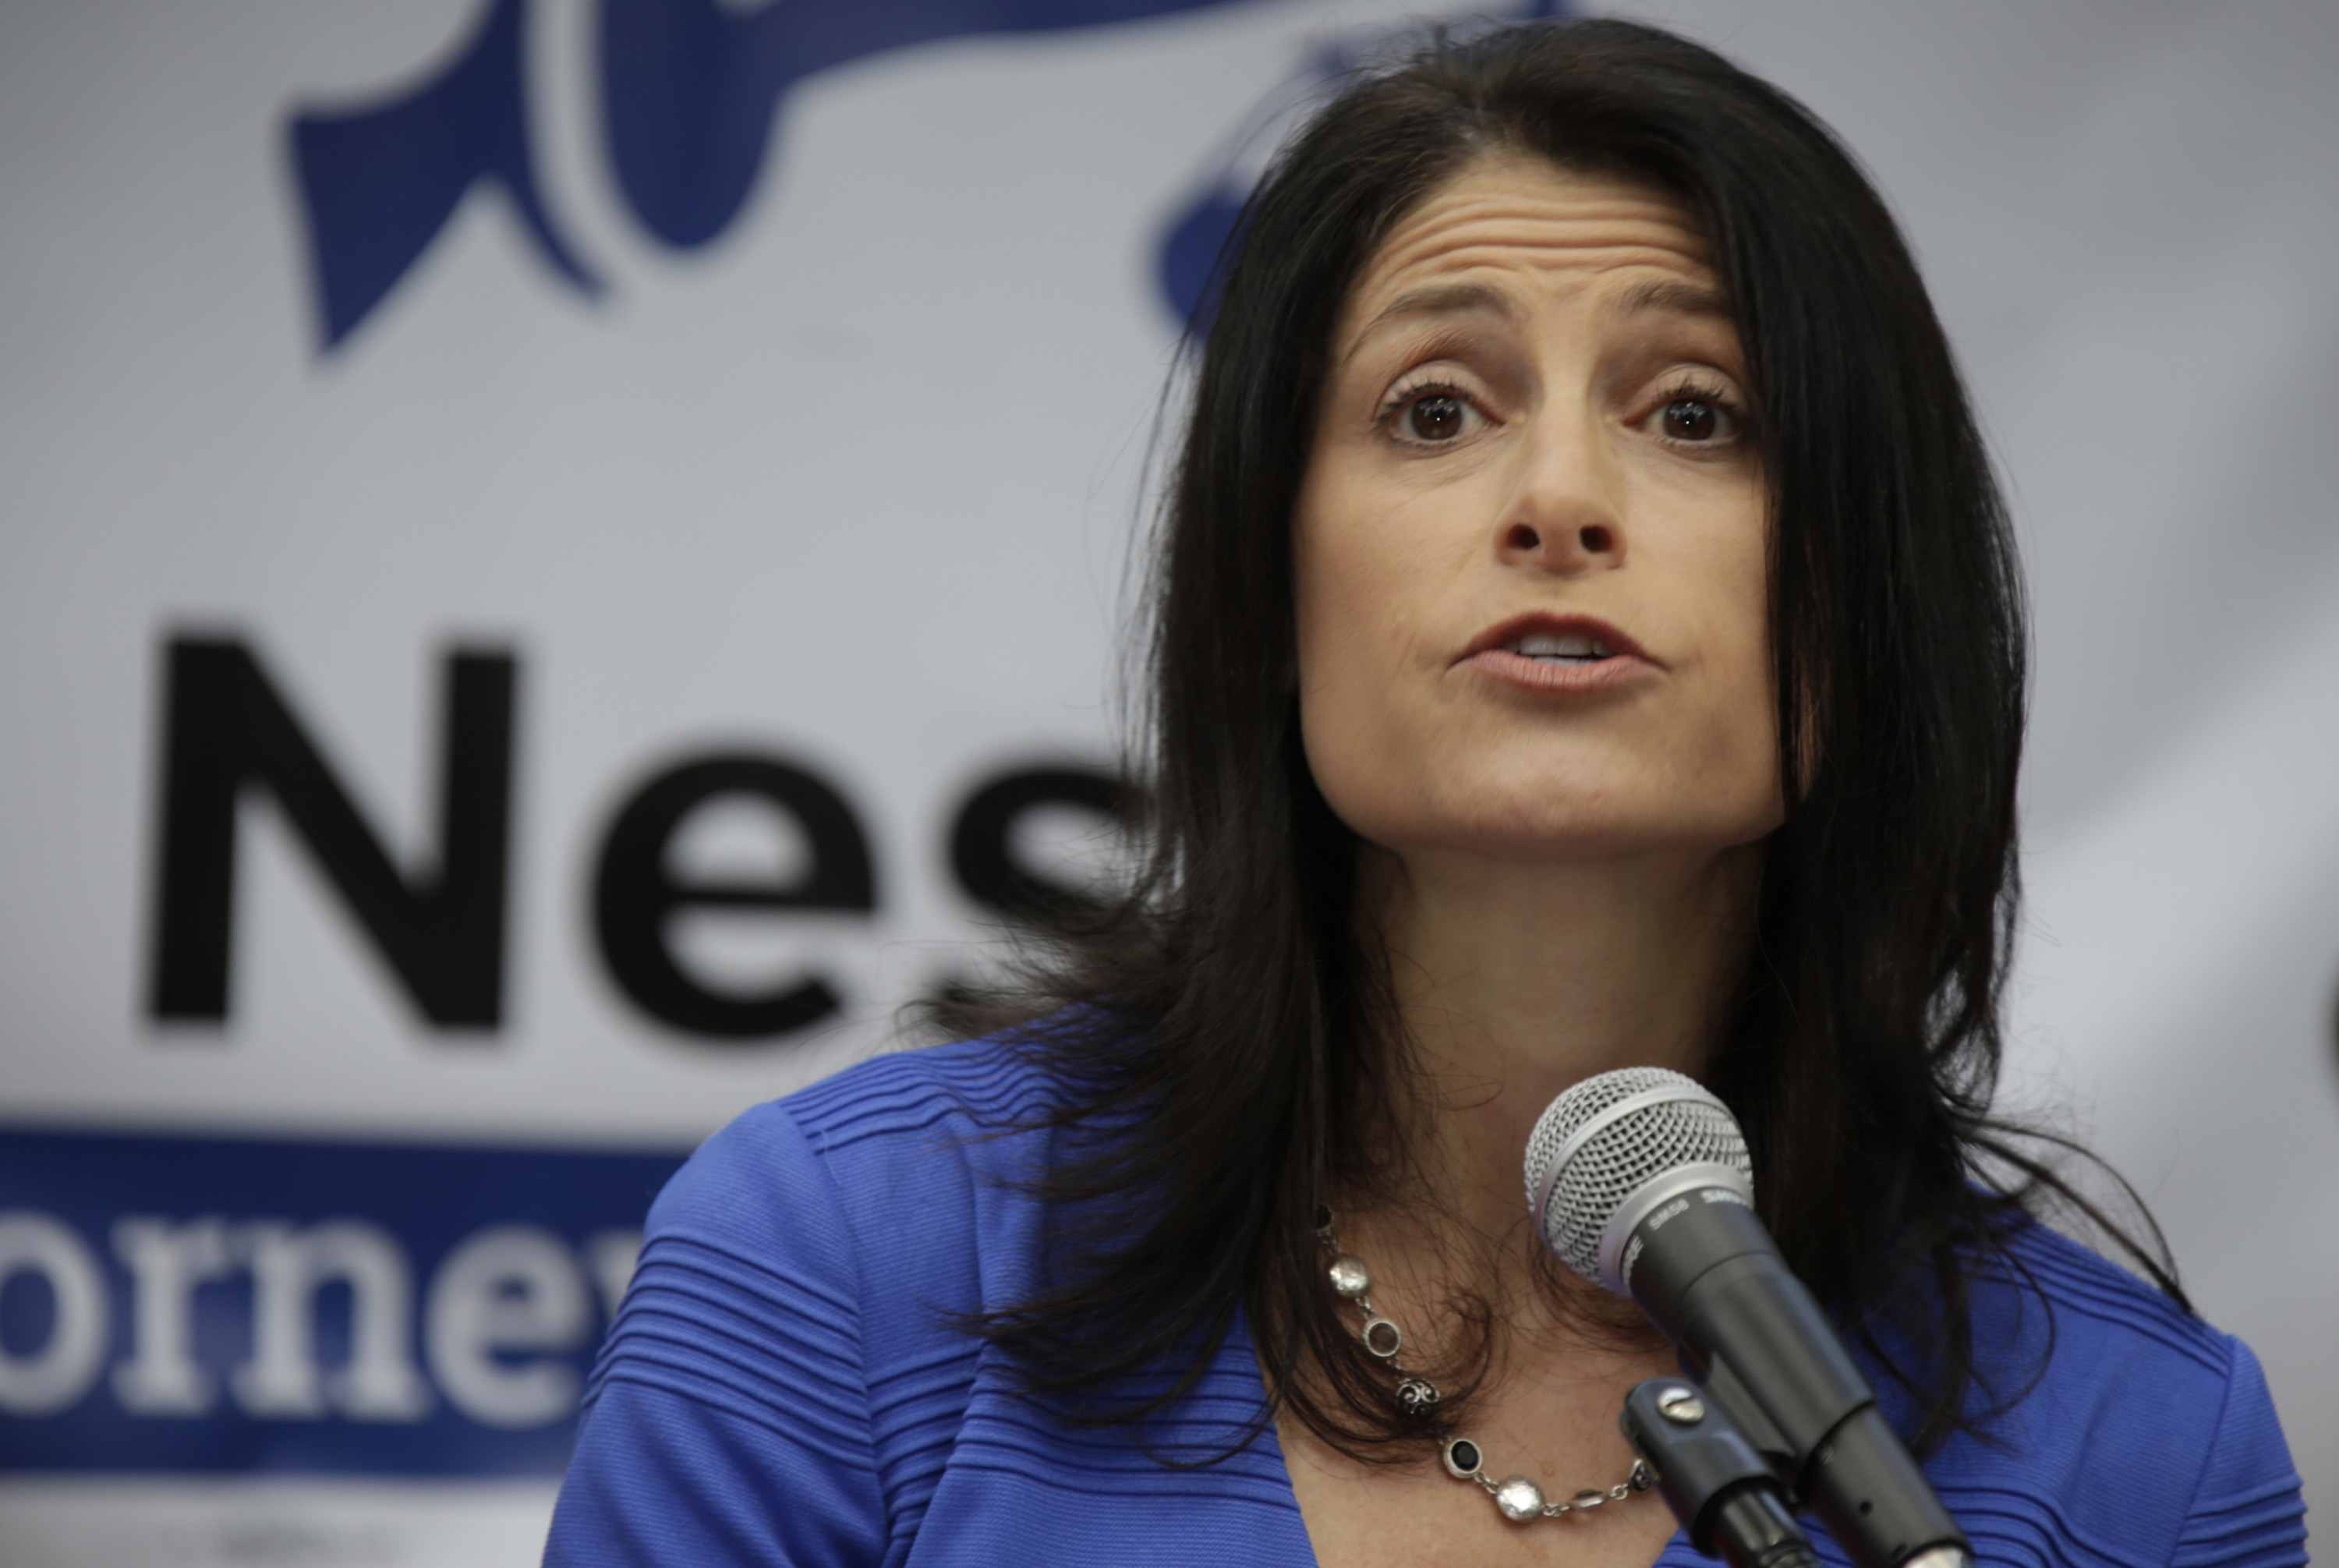 Candidate for Michigan attorney general promises she won't 'sexually harass' staff if elected